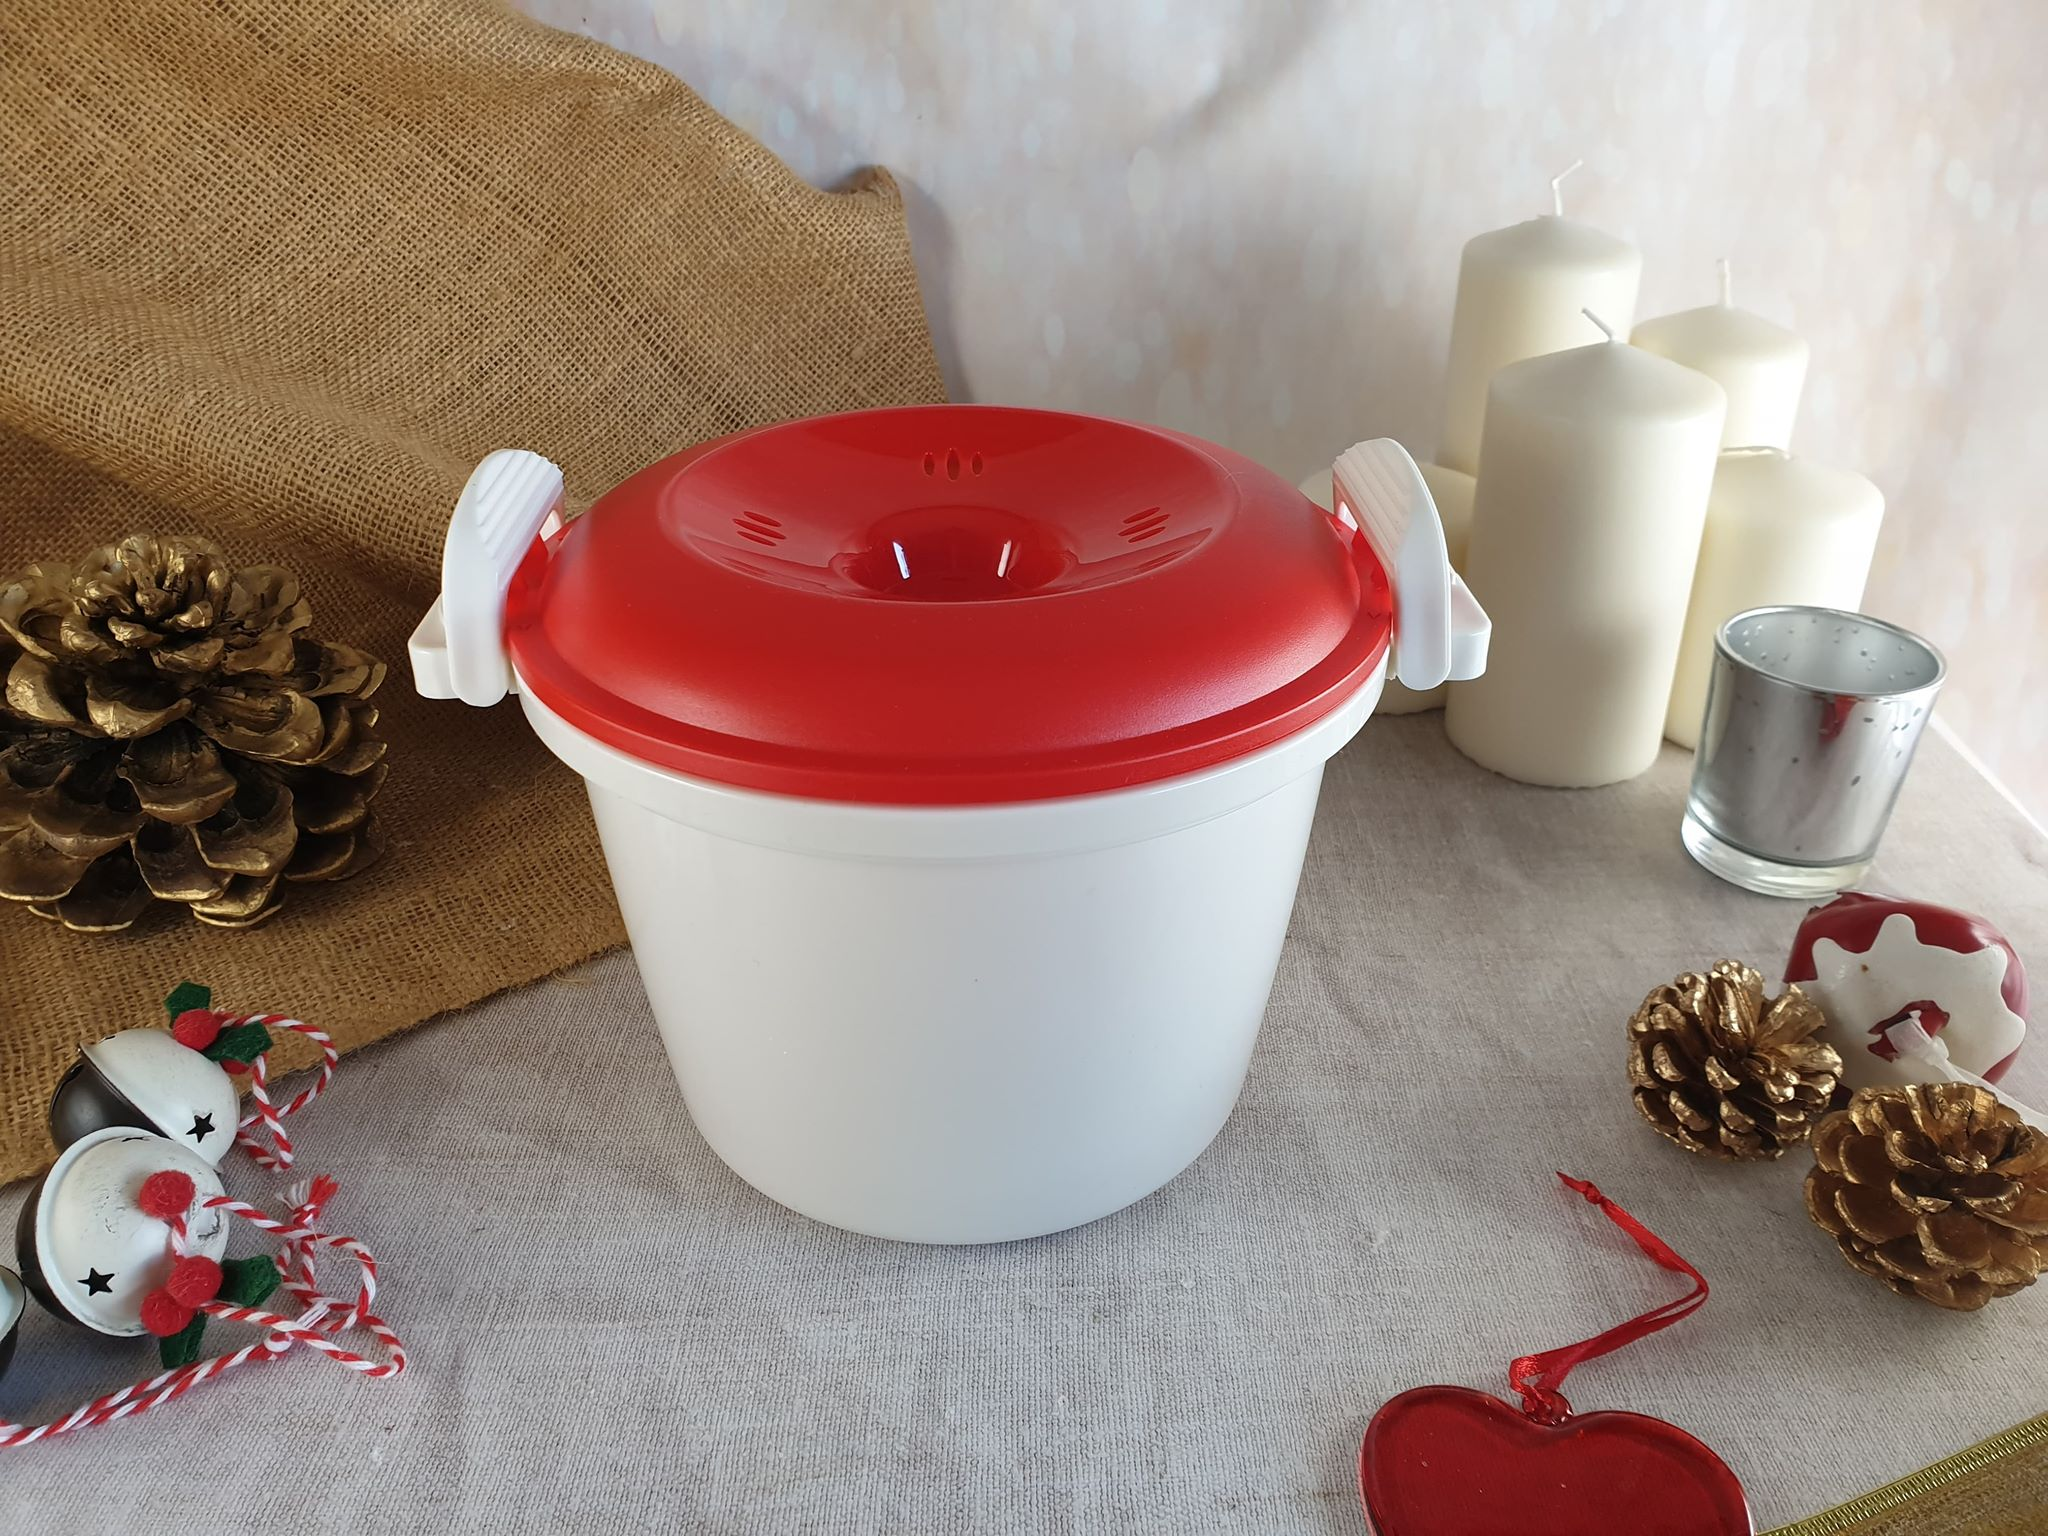 3. Kitchen Craft 1.5 Litre Microwave Rice Cooker